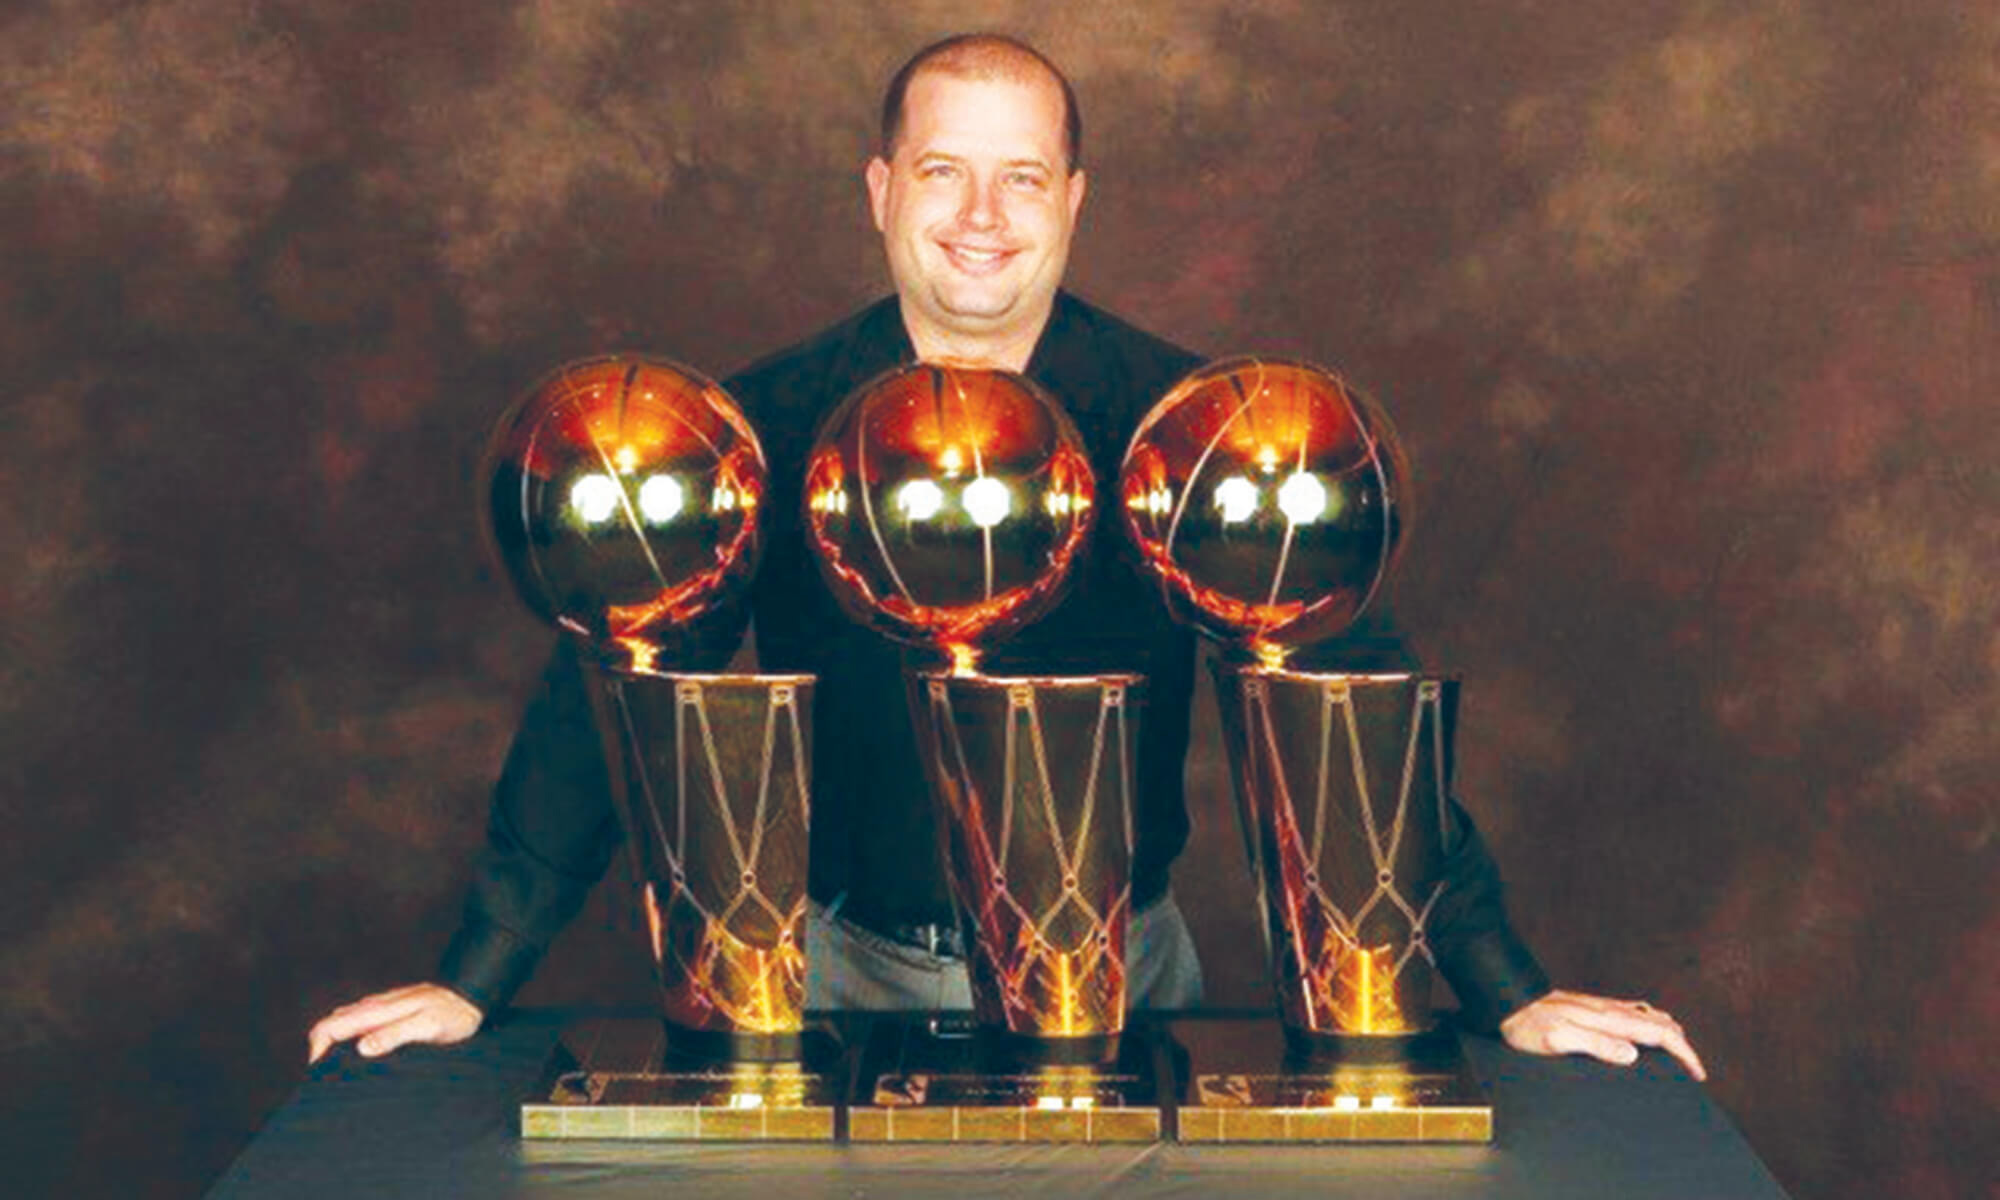 Dave Beyer and his championship tropheys